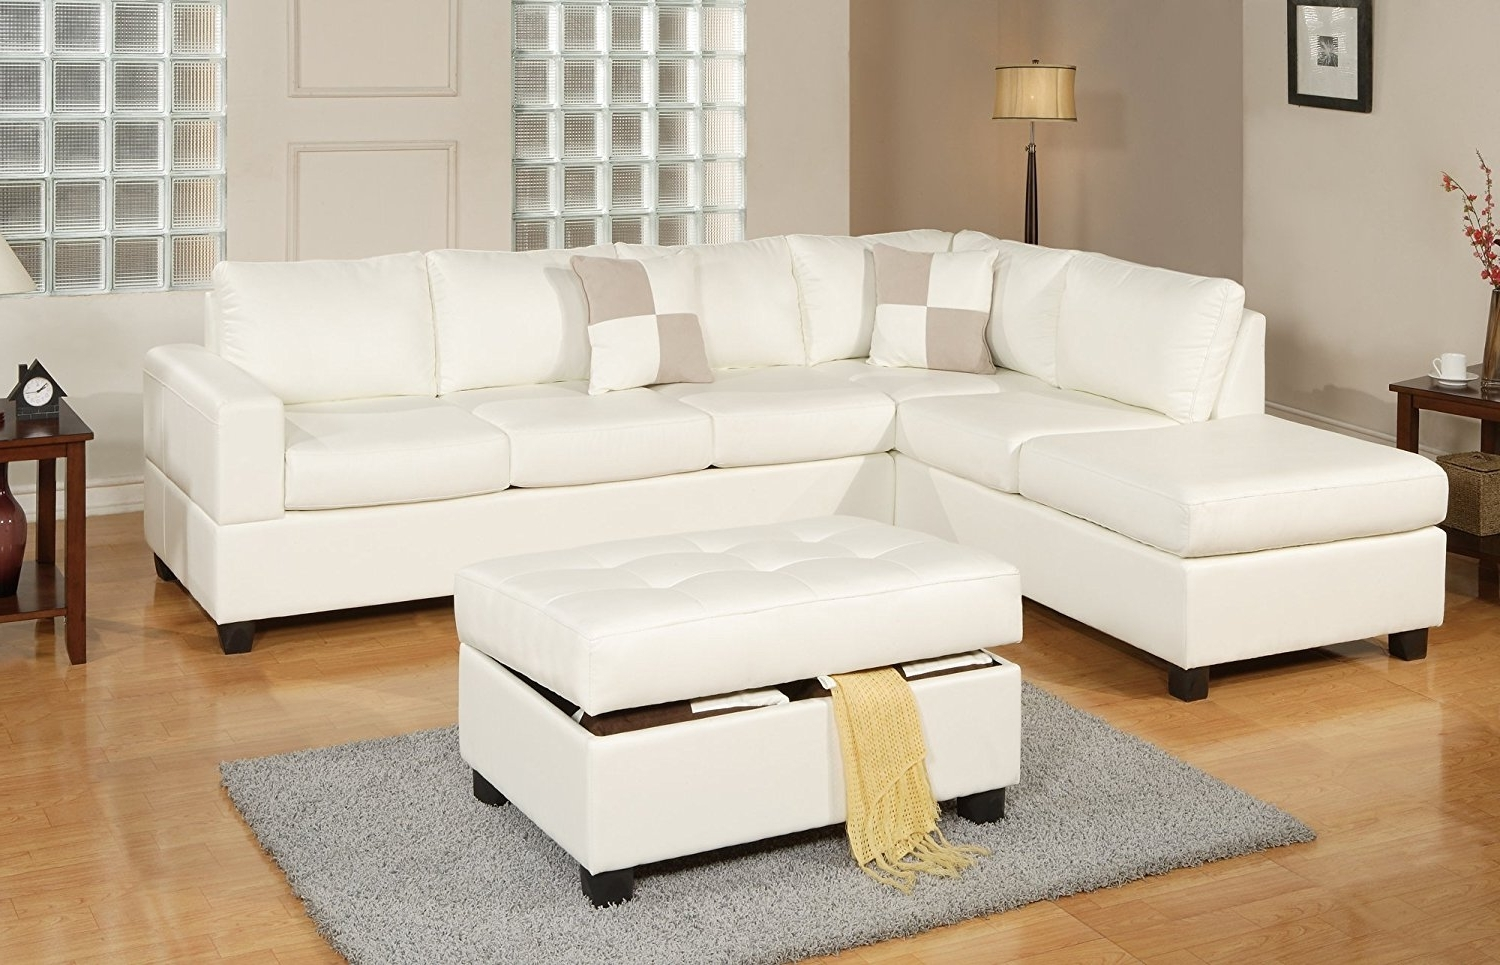 Leather Sectional Sofas With Ottoman Inside Widely Used Amazon: Bobkona Soft Touch Reversible Bonded Leather Match  (View 14 of 15)